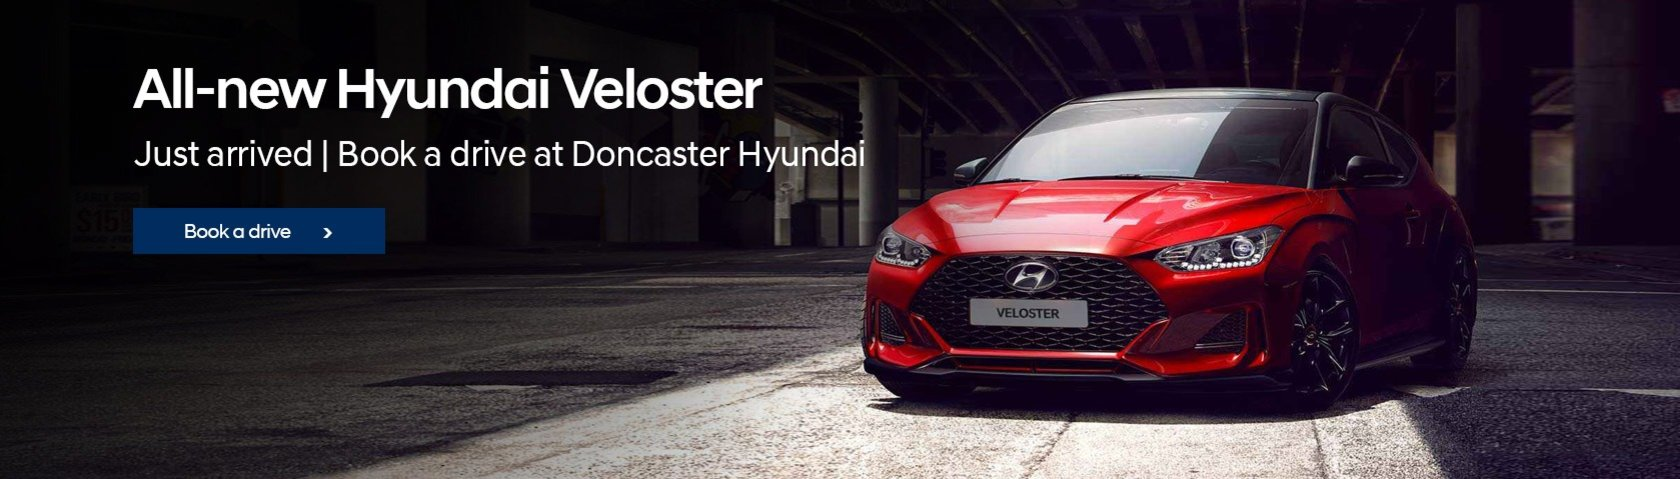 All New Hyundai Veloster Doncaster